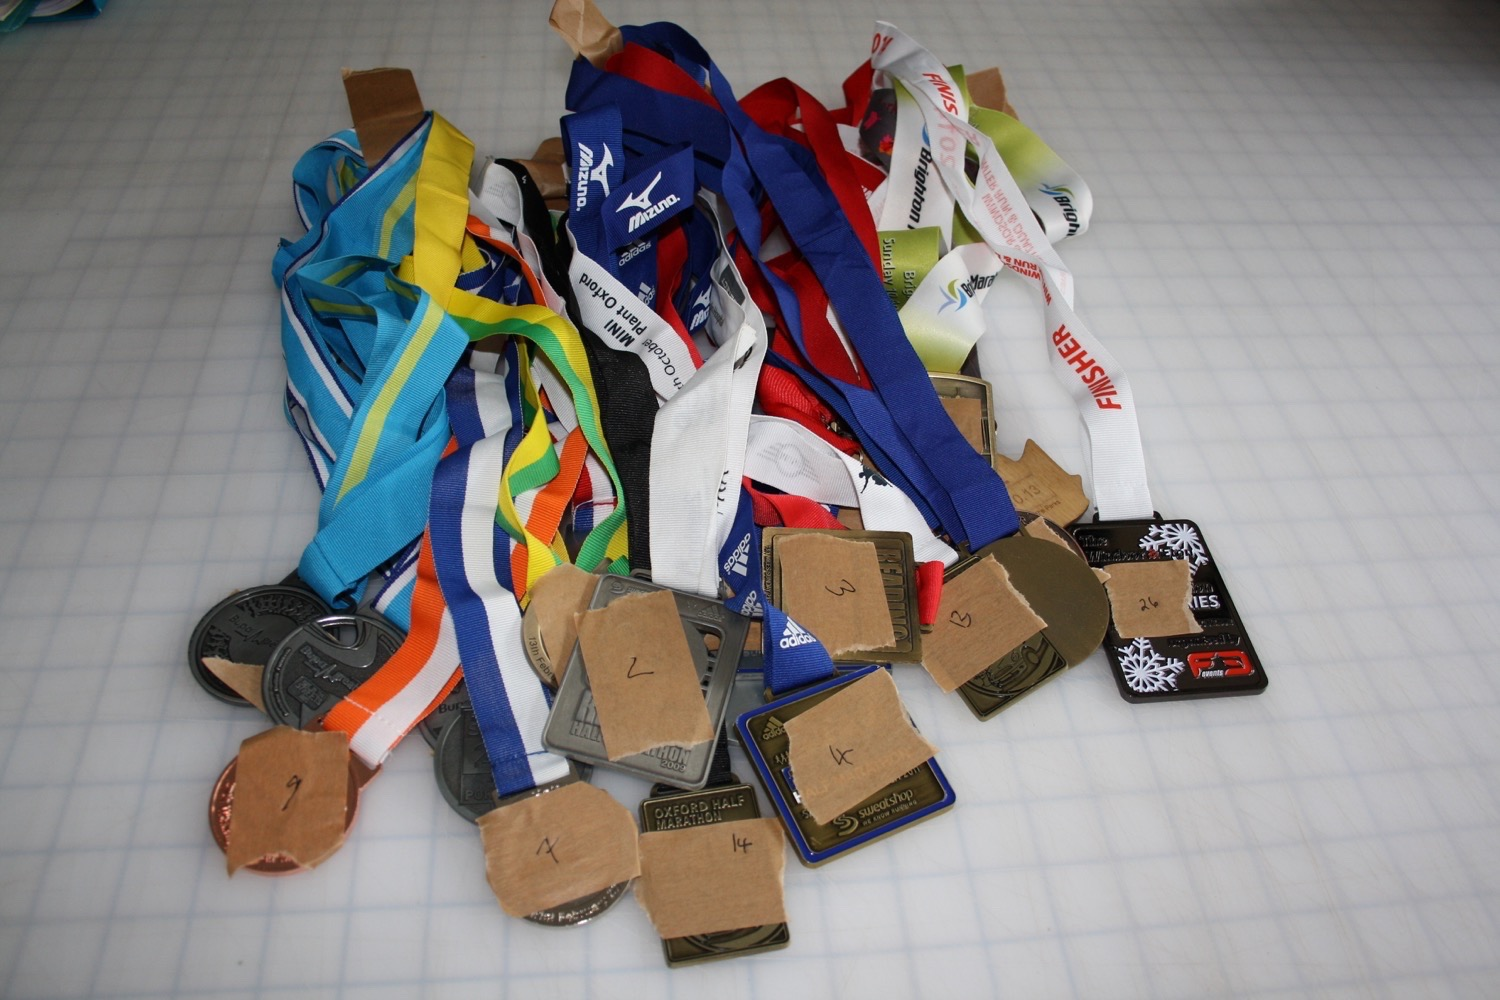 hampshire-picture-framing-medals-011.JPG